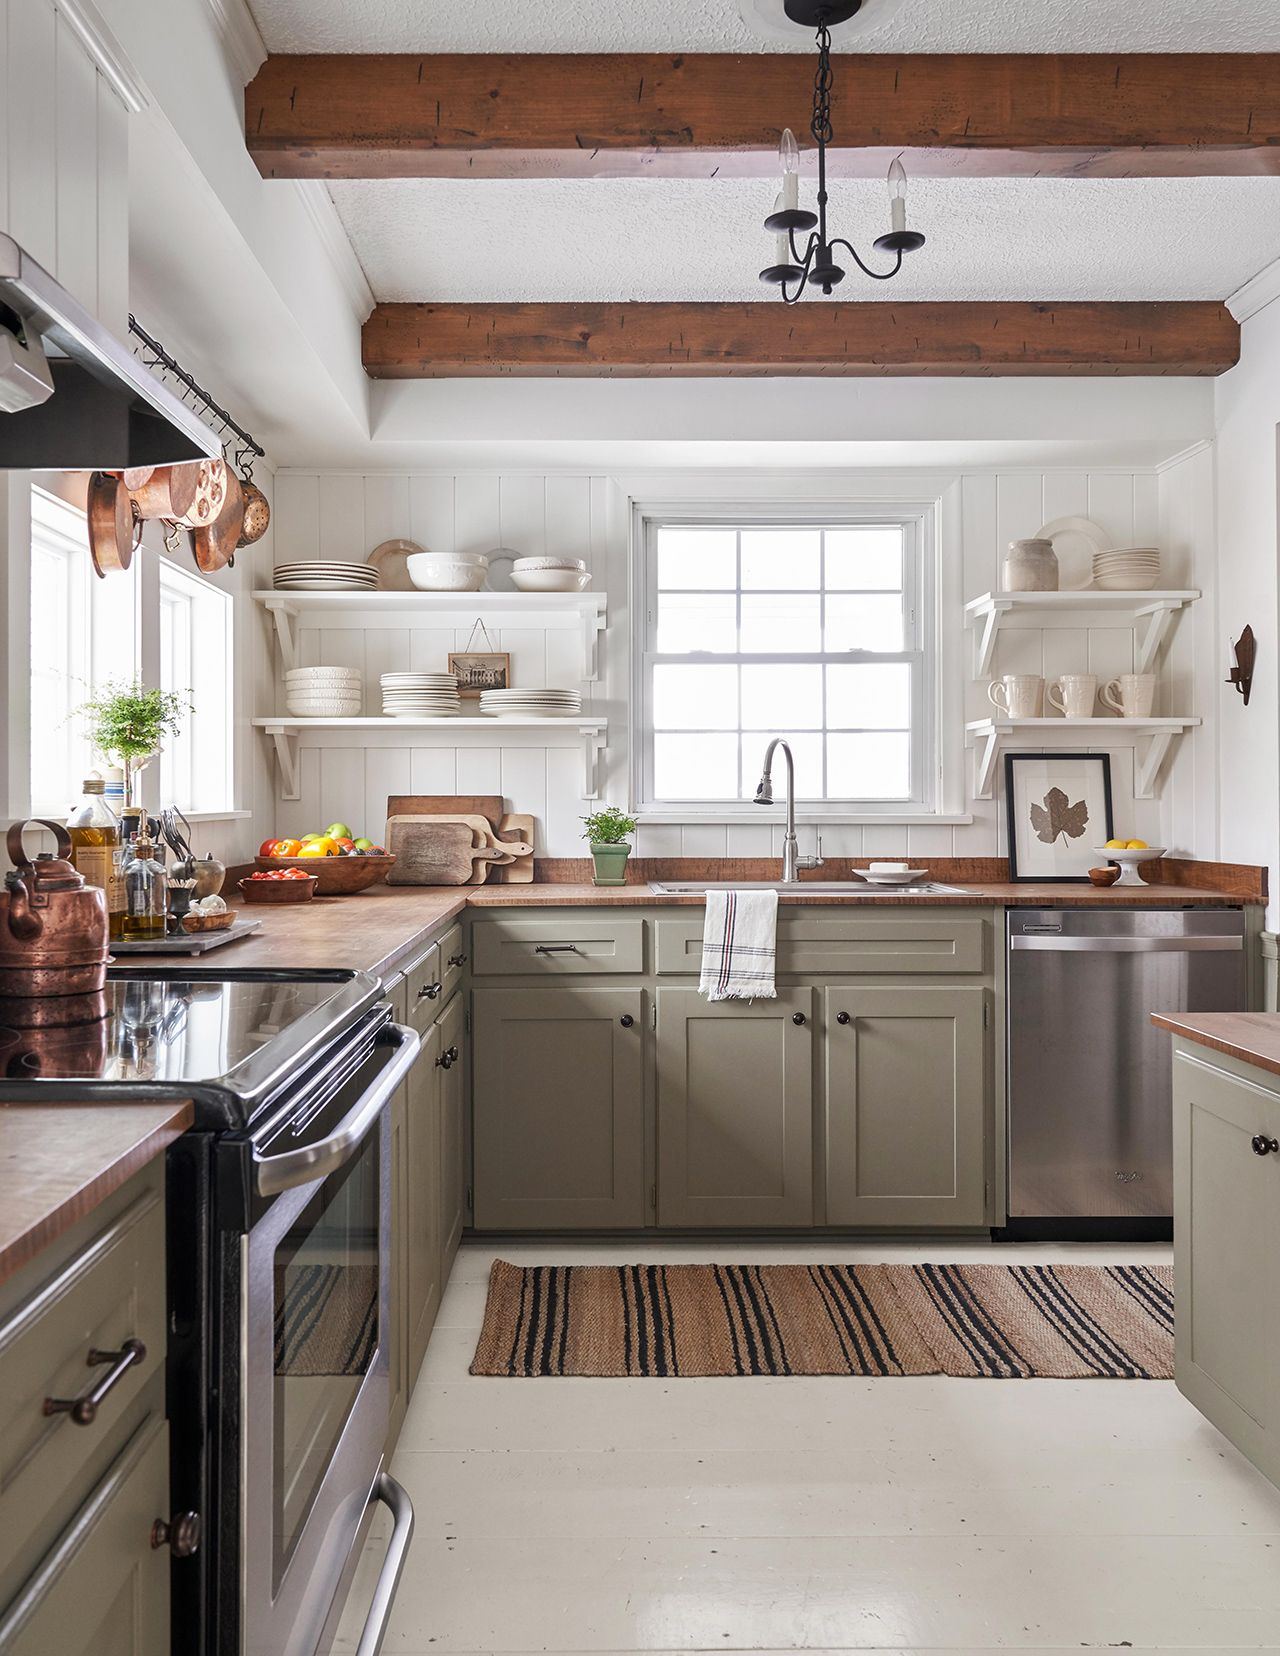 9 Essential Tips For Choosing The Coziest Farmhouse Kitchen Colors In 2020 Farmhouse Kitchen Colors Green Kitchen Cabinets Kitchen Colors